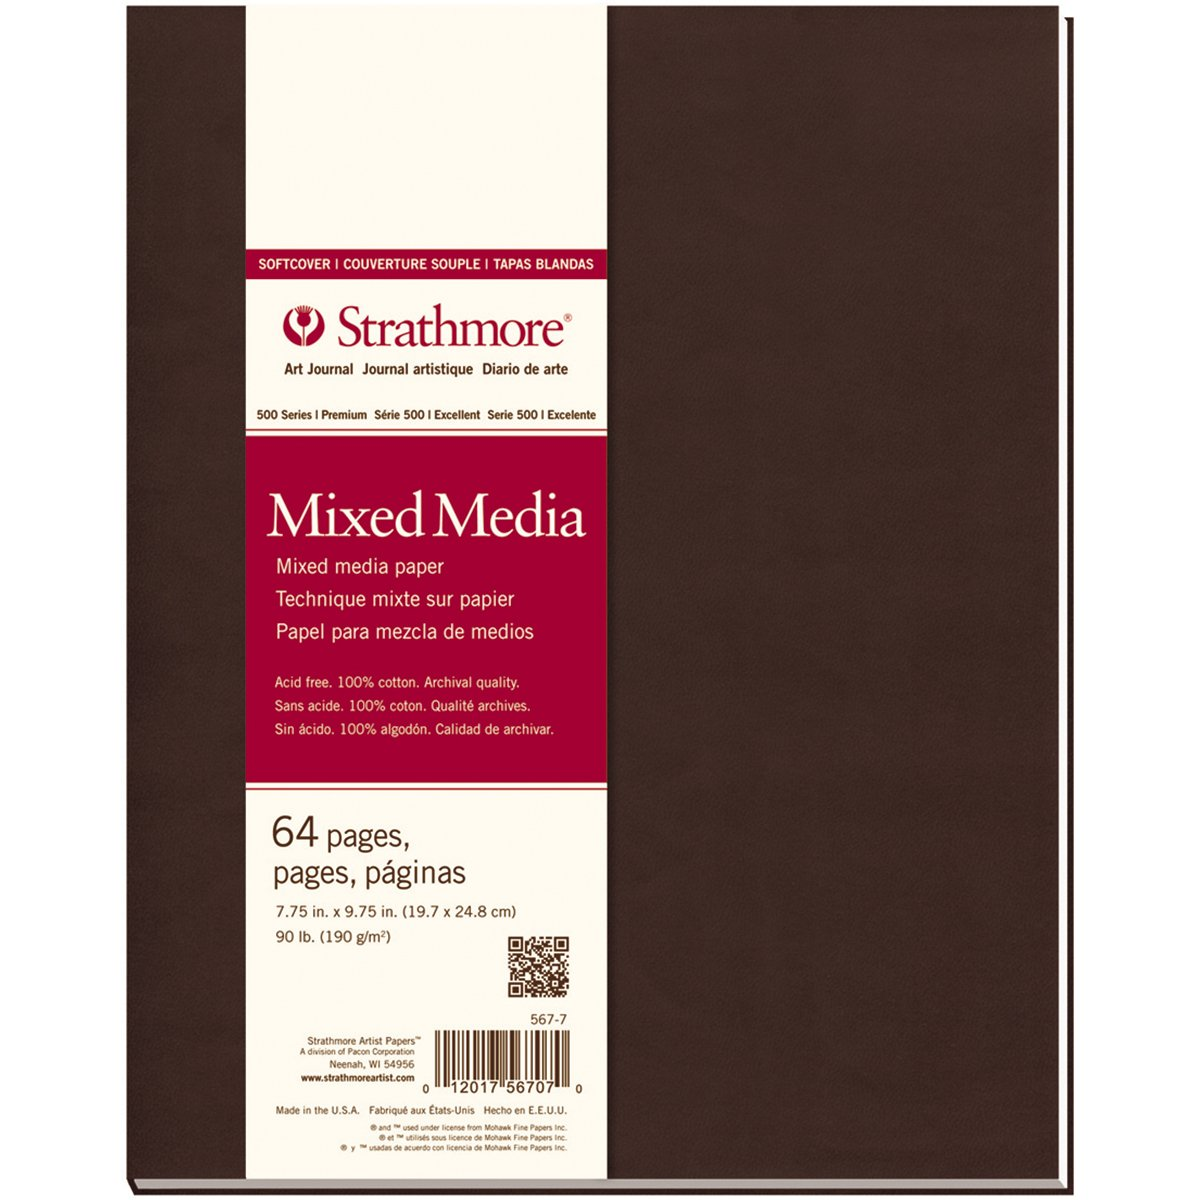 Strathmore 567-7 500 Series Softcover Mixed Media Art Journal, 7.75''x9.75'' 32 Sheets by Strathmore